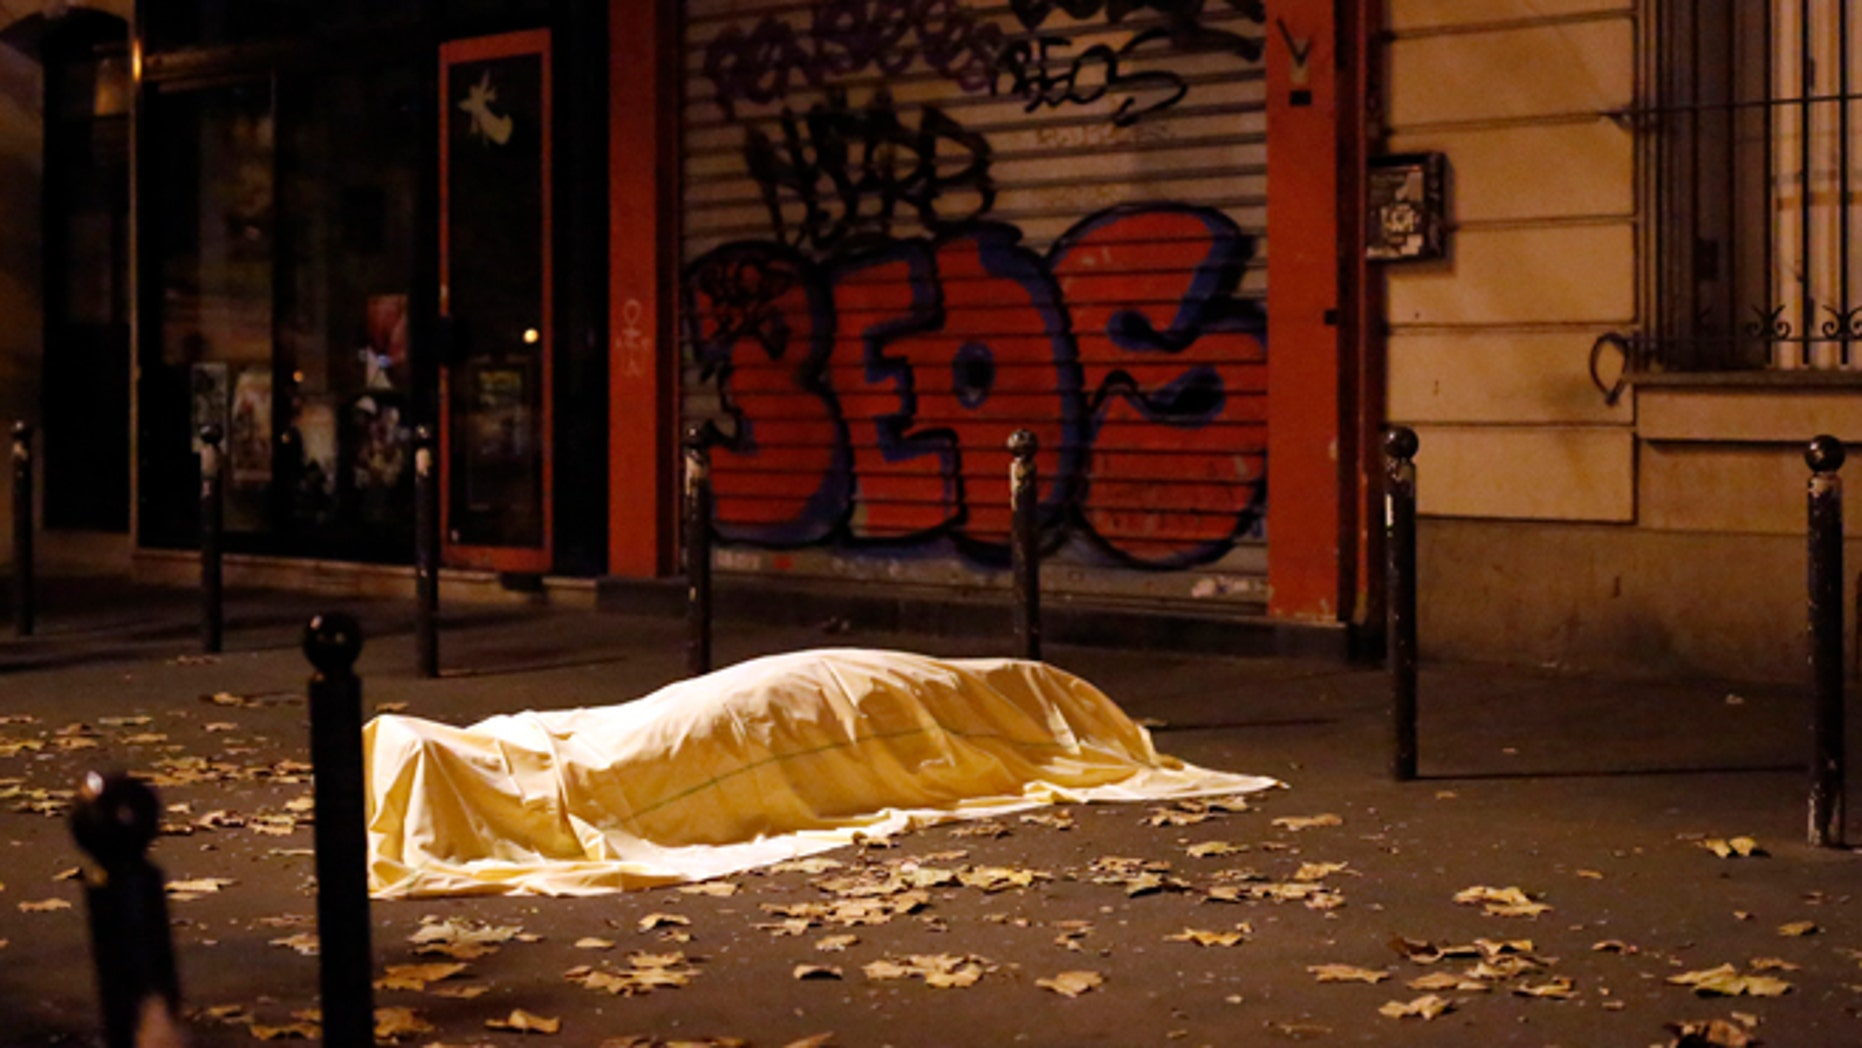 Nov. 13, 2015. A victim of an attack in Paris lays dead outside the Bataclan theater, Paris.